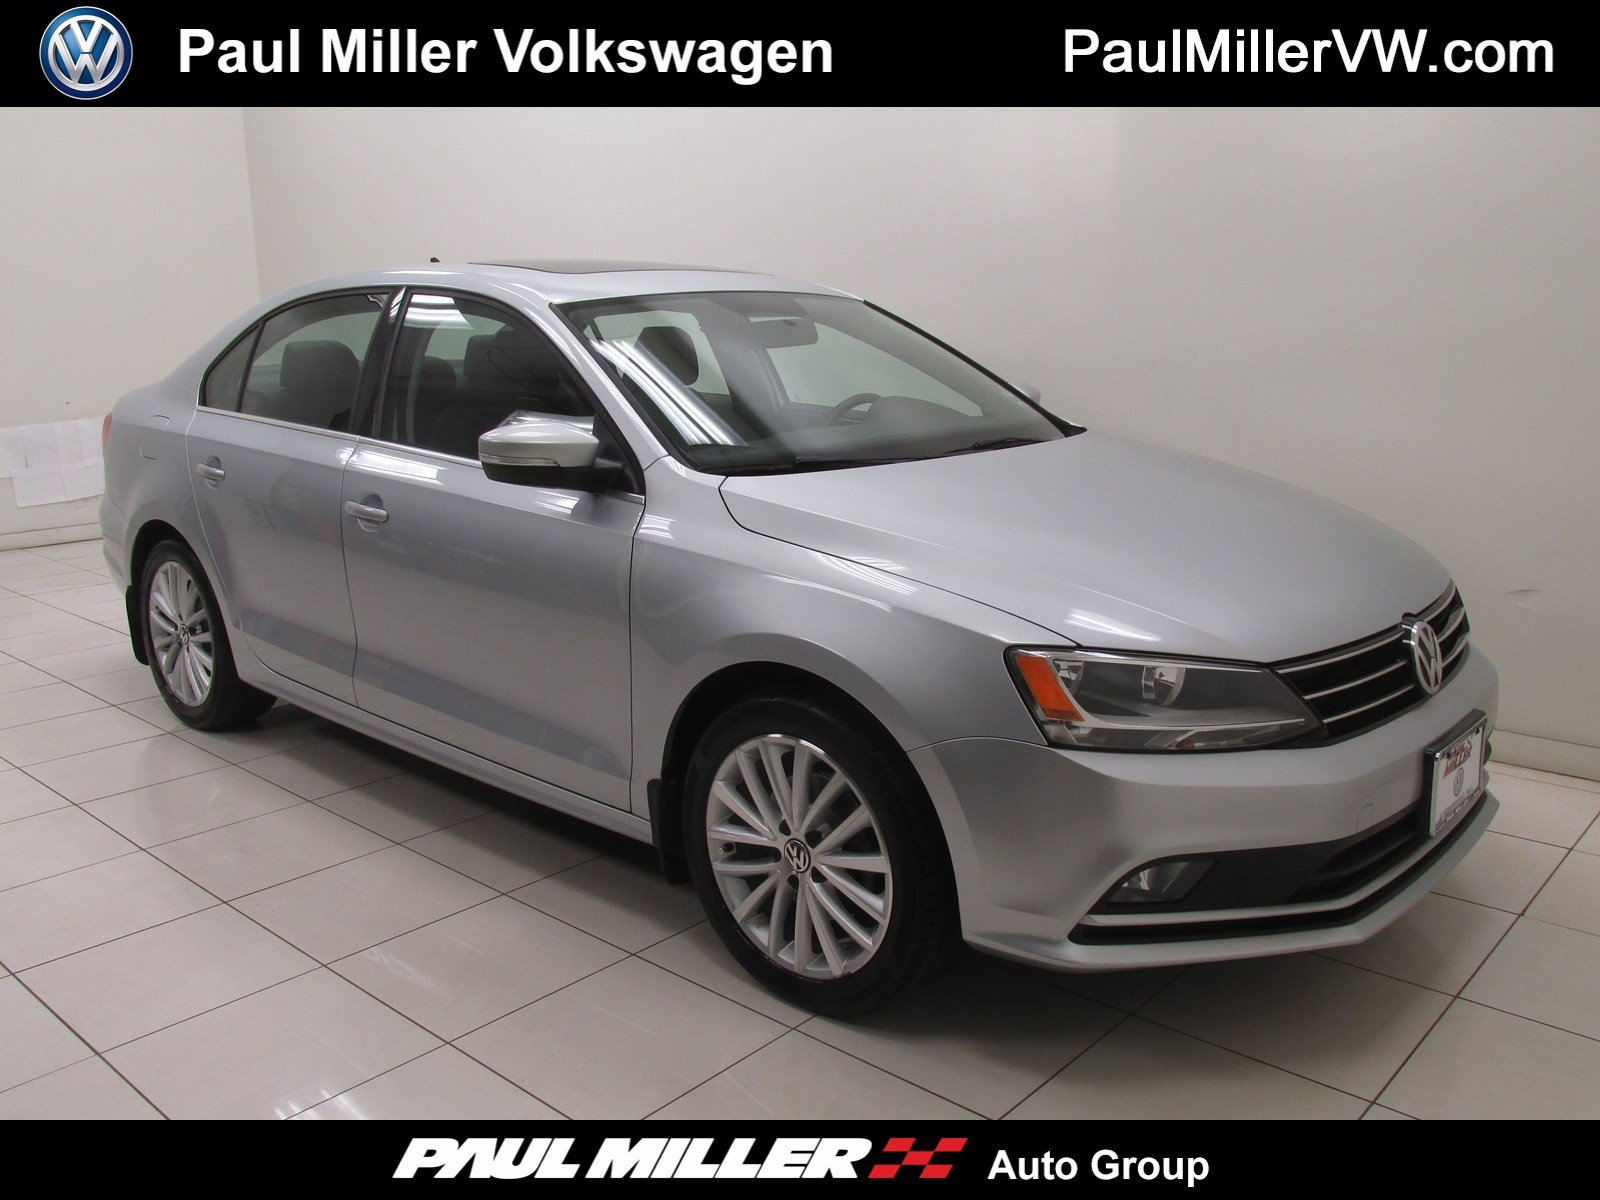 Certified Pre Owned 2015 Volkswagen Jetta Sedan 1 8T SE w